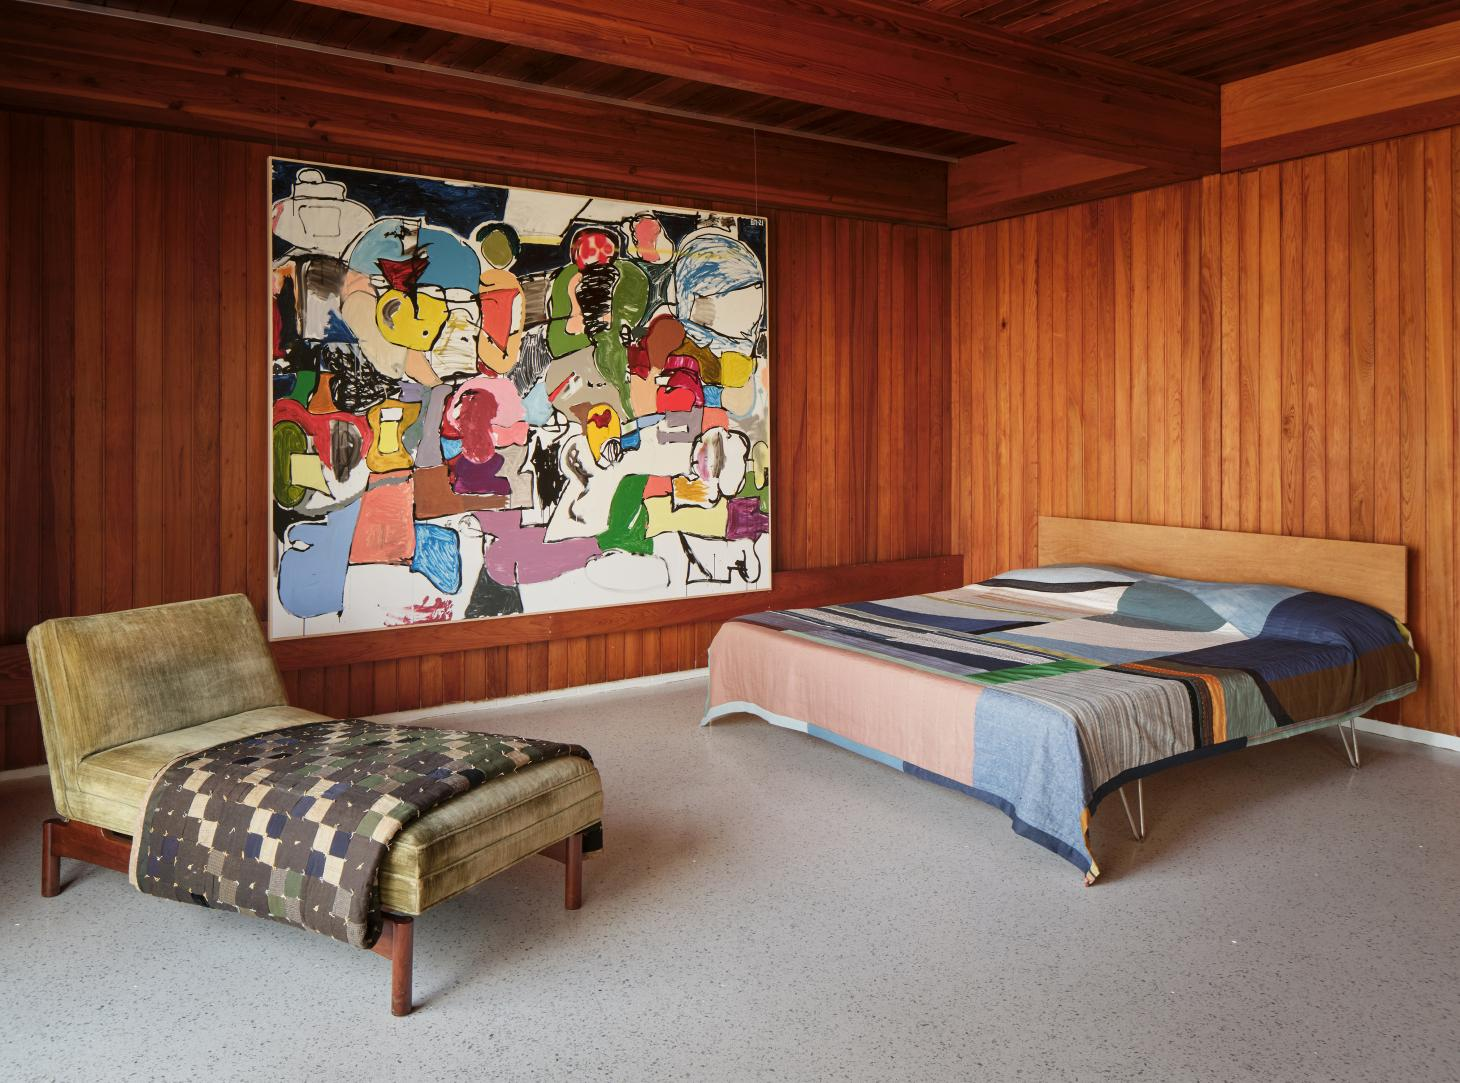 Wood panelled bedroom with terrazzo floor, colourful textiles on bed and day bed and art on the wall